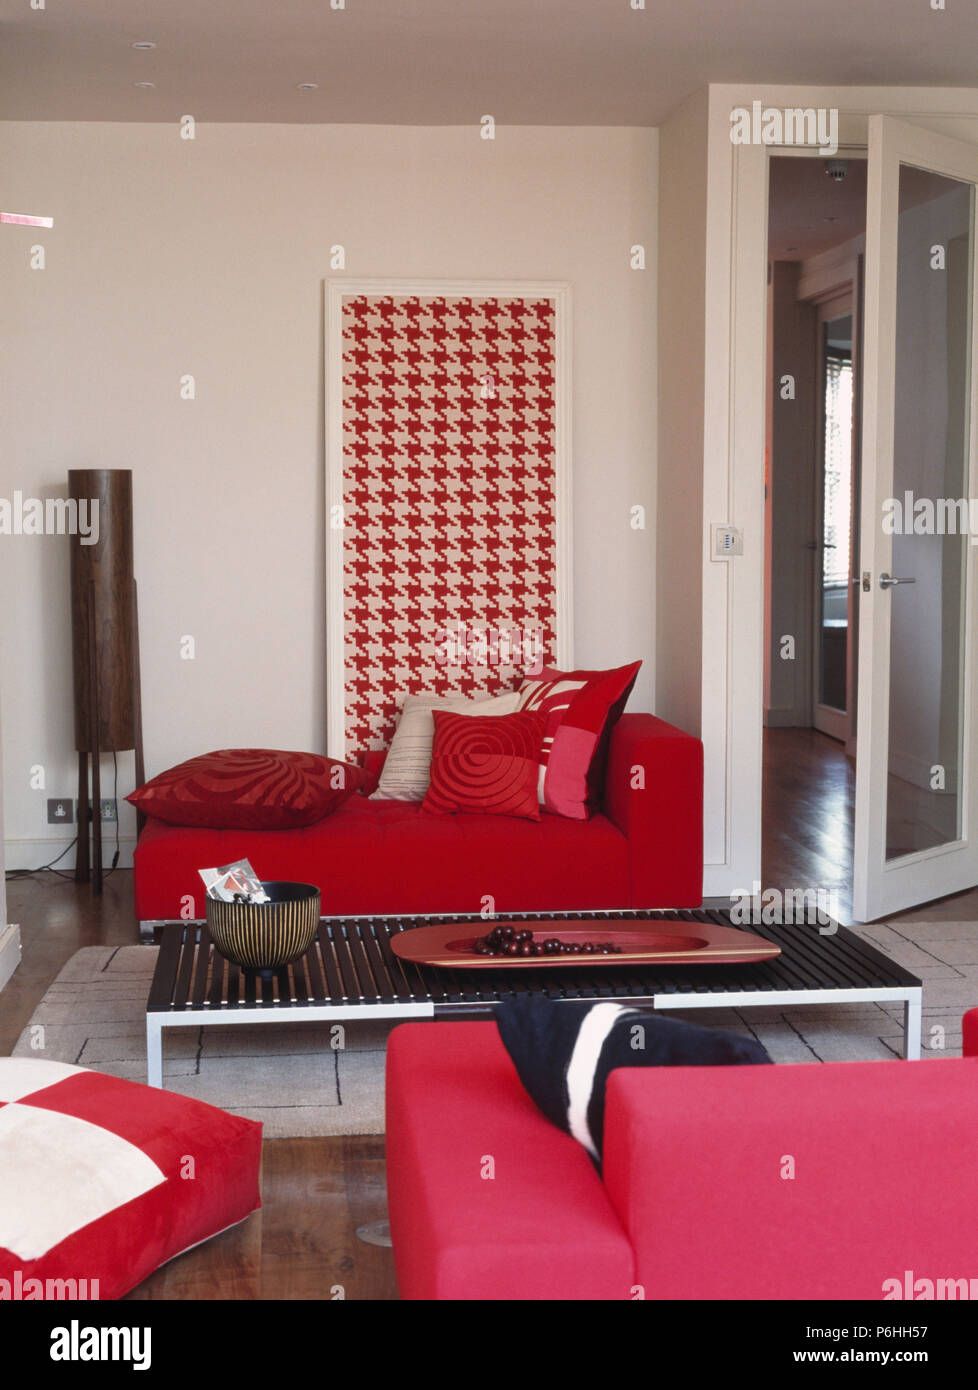 Prime Patterned Red Cushions On Bright Red Sofa In Front Of Large Download Free Architecture Designs Scobabritishbridgeorg